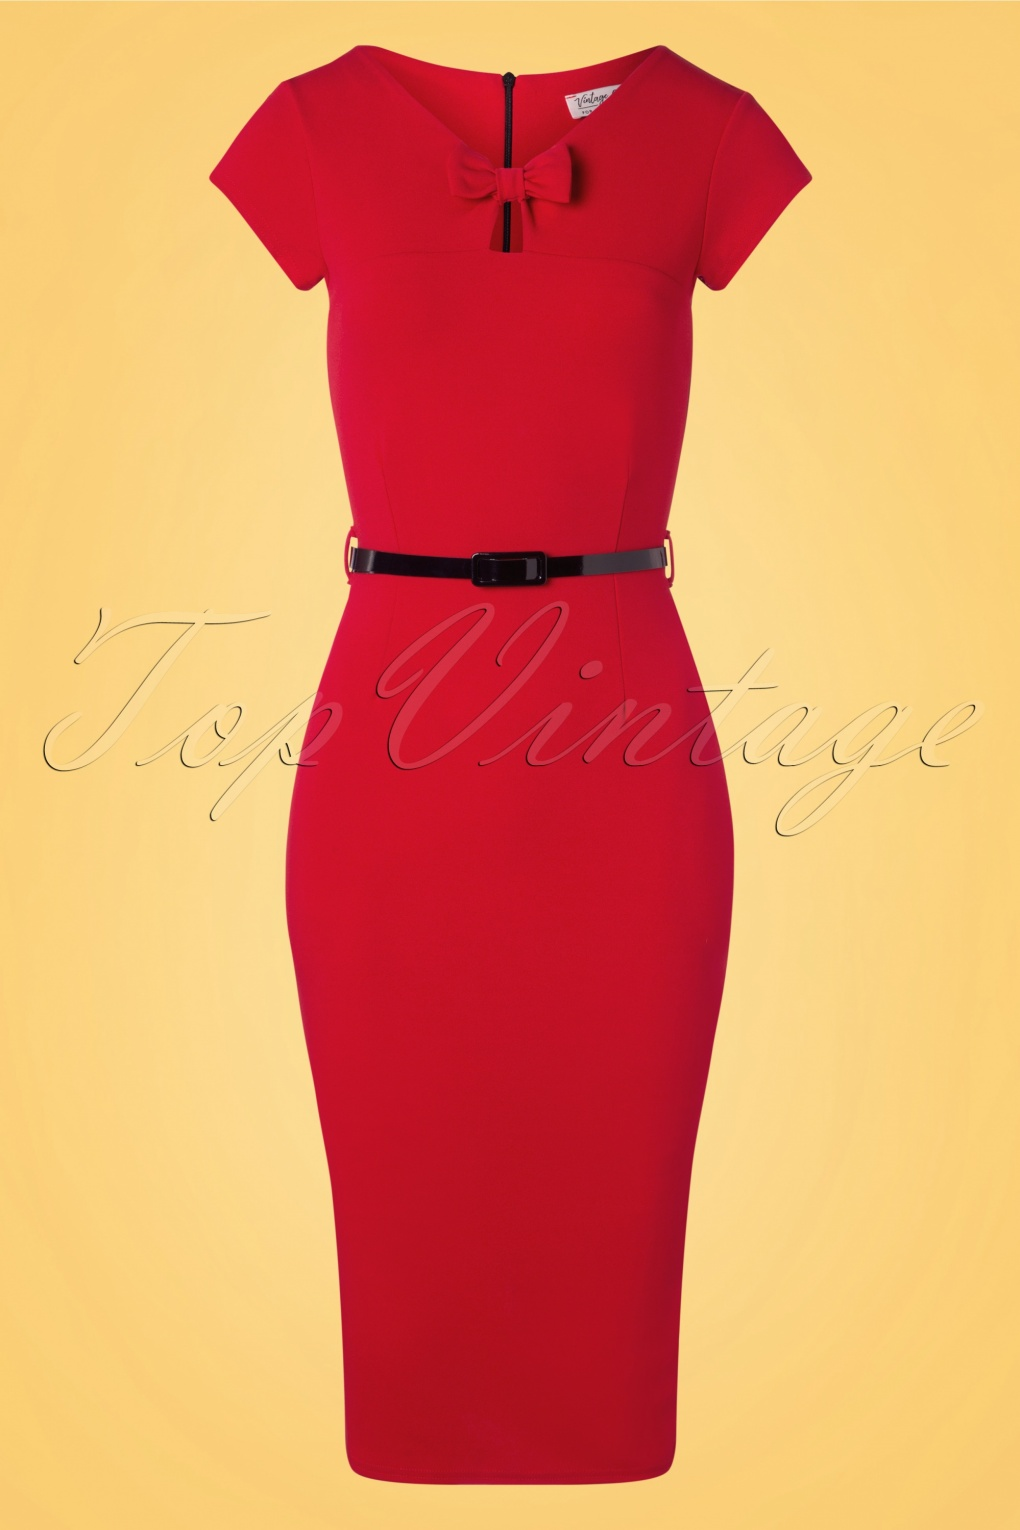 Vintage Sailor Clothes, Nautical Theme Clothing 50s Becka Bow Pencil Dress in Deep Red £53.51 AT vintagedancer.com